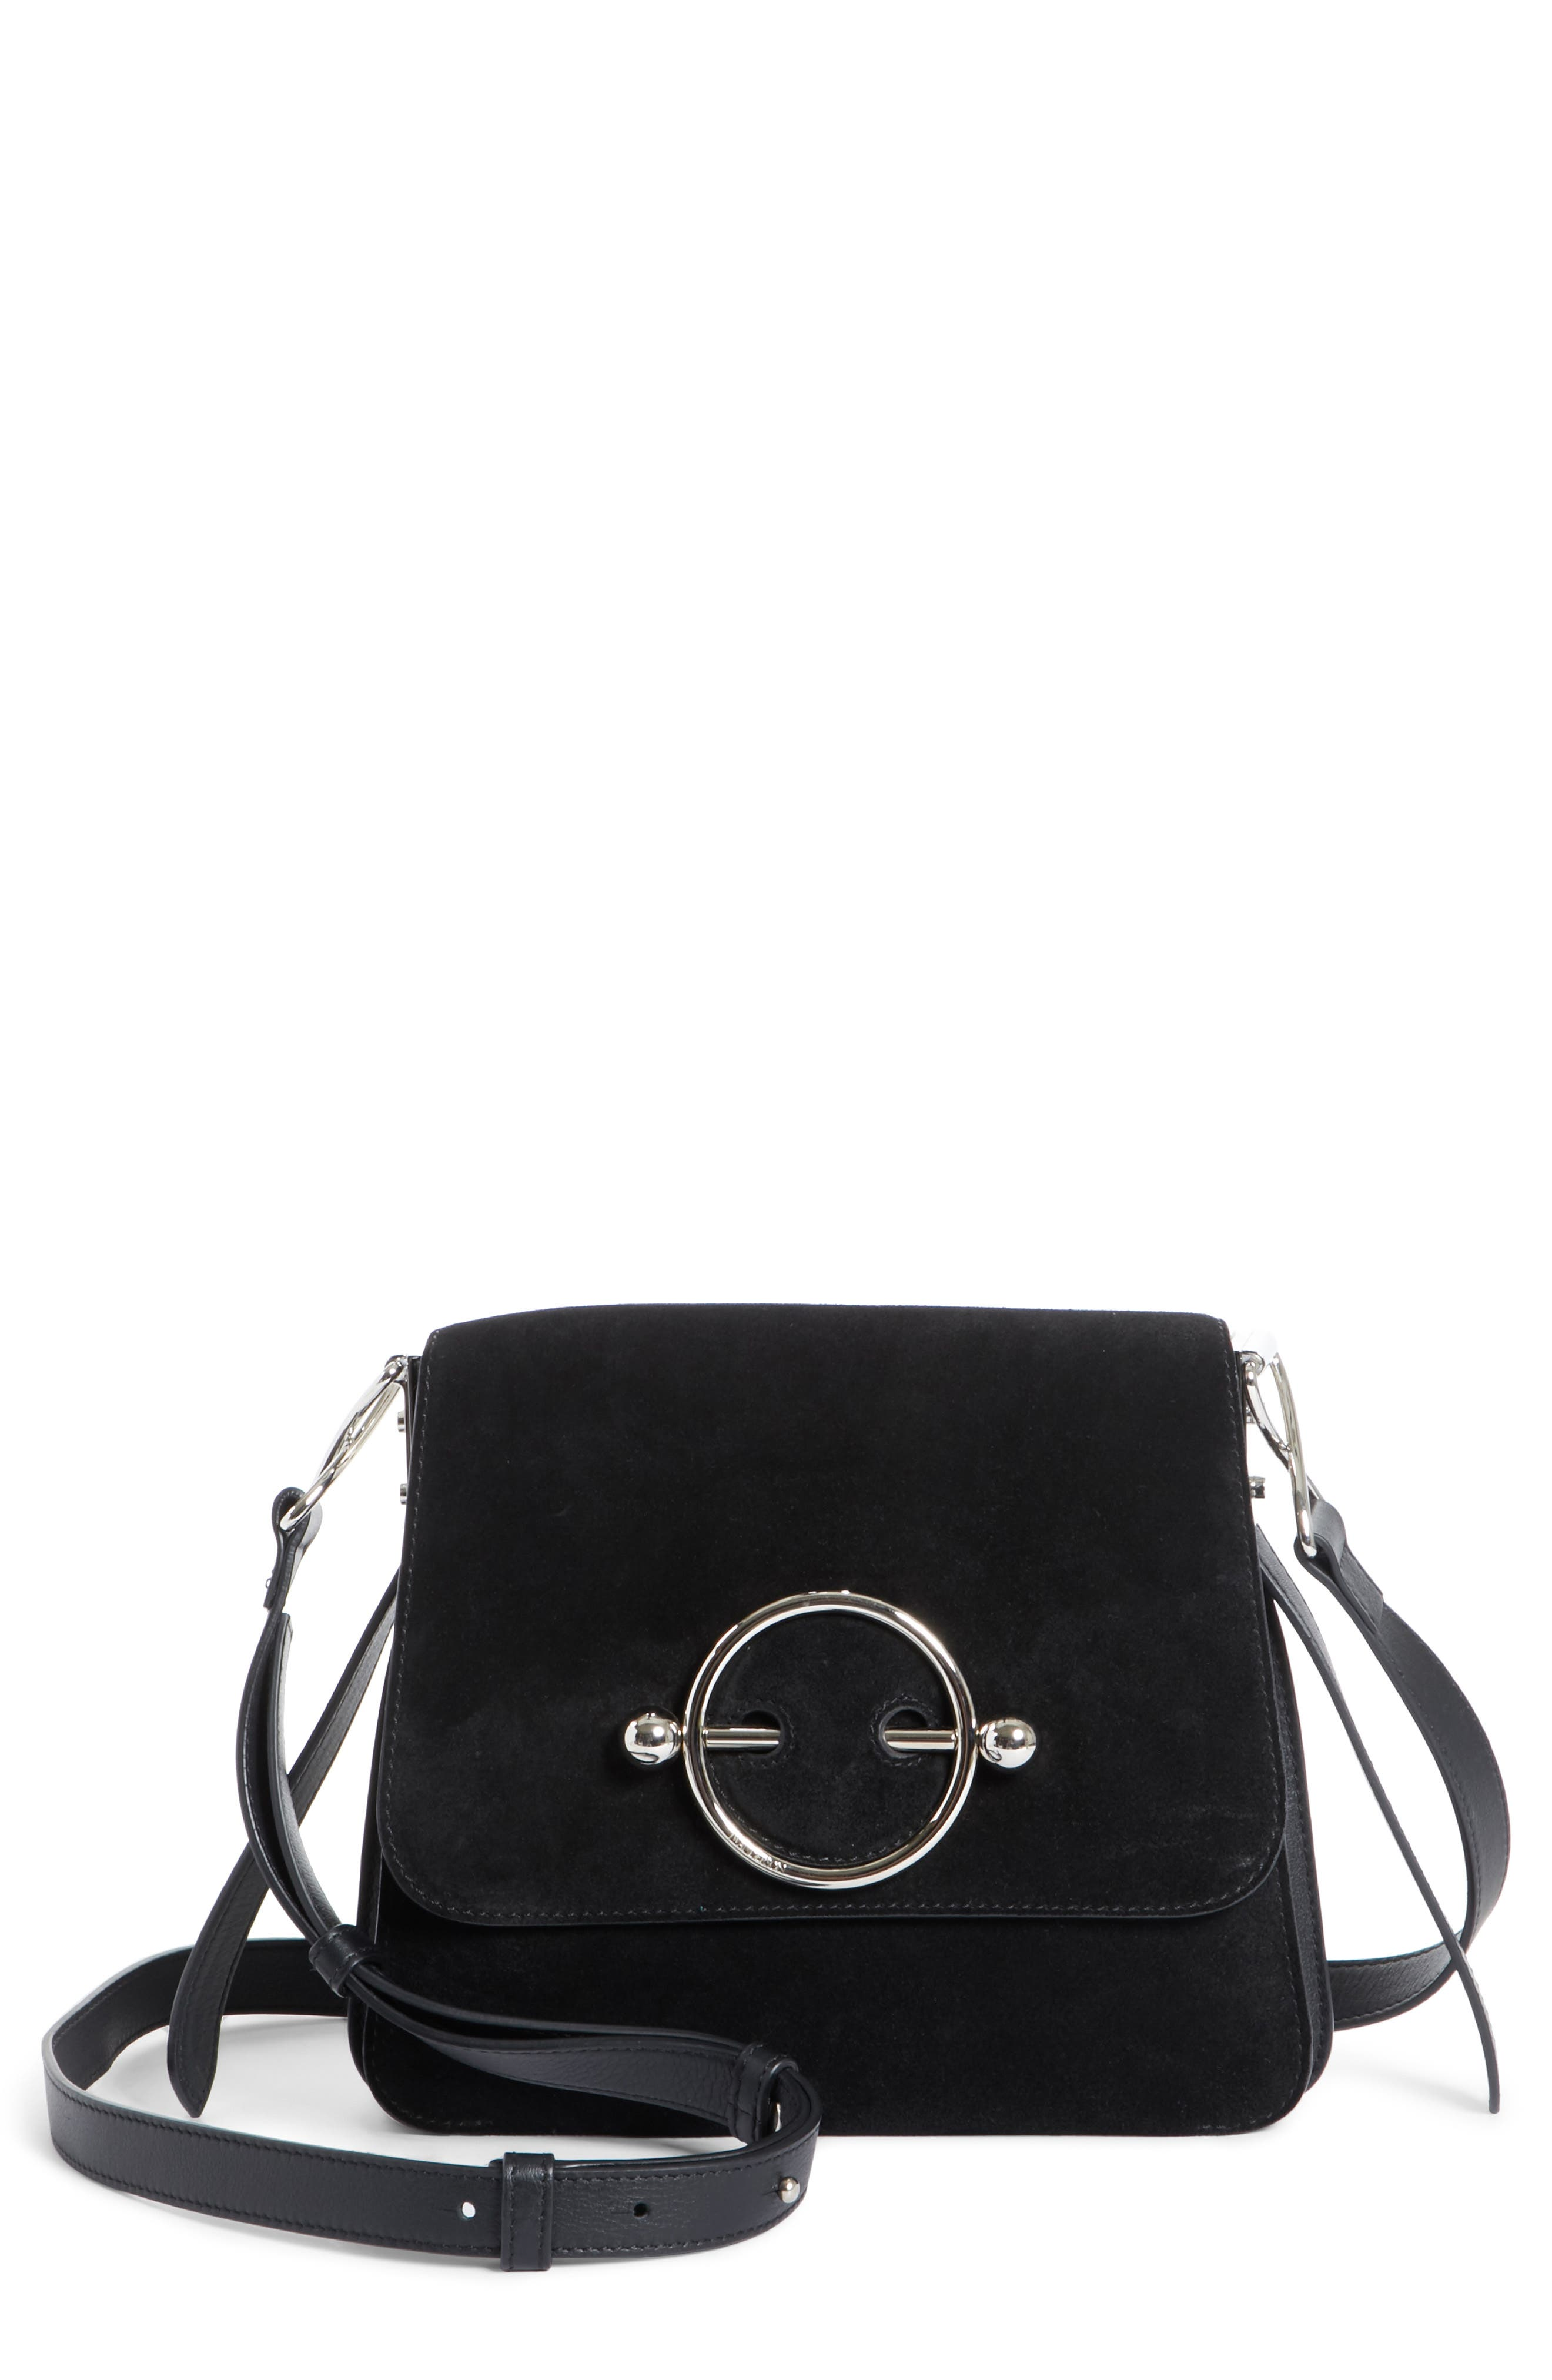 J.W.ANDERSON Disc Crossbody Bag,                             Main thumbnail 1, color,                             Black